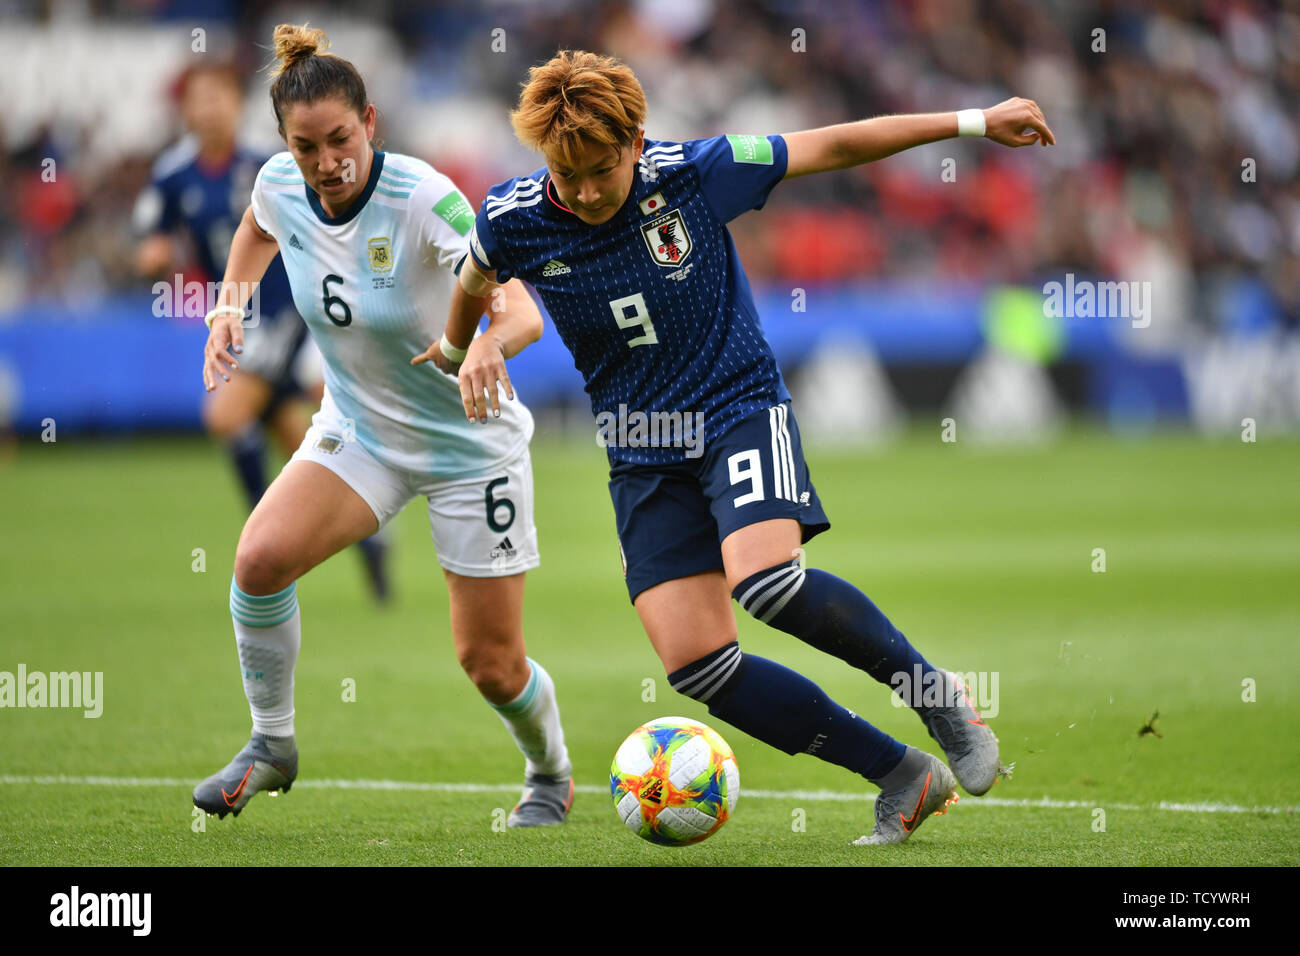 10 june 2019 Paris, France Soccer Women's World Cup France 2019: Argentina v Japan   Aldana Cometti (Argentinien) (6) in Challenge with Yuika Sugasawa - Stock Image